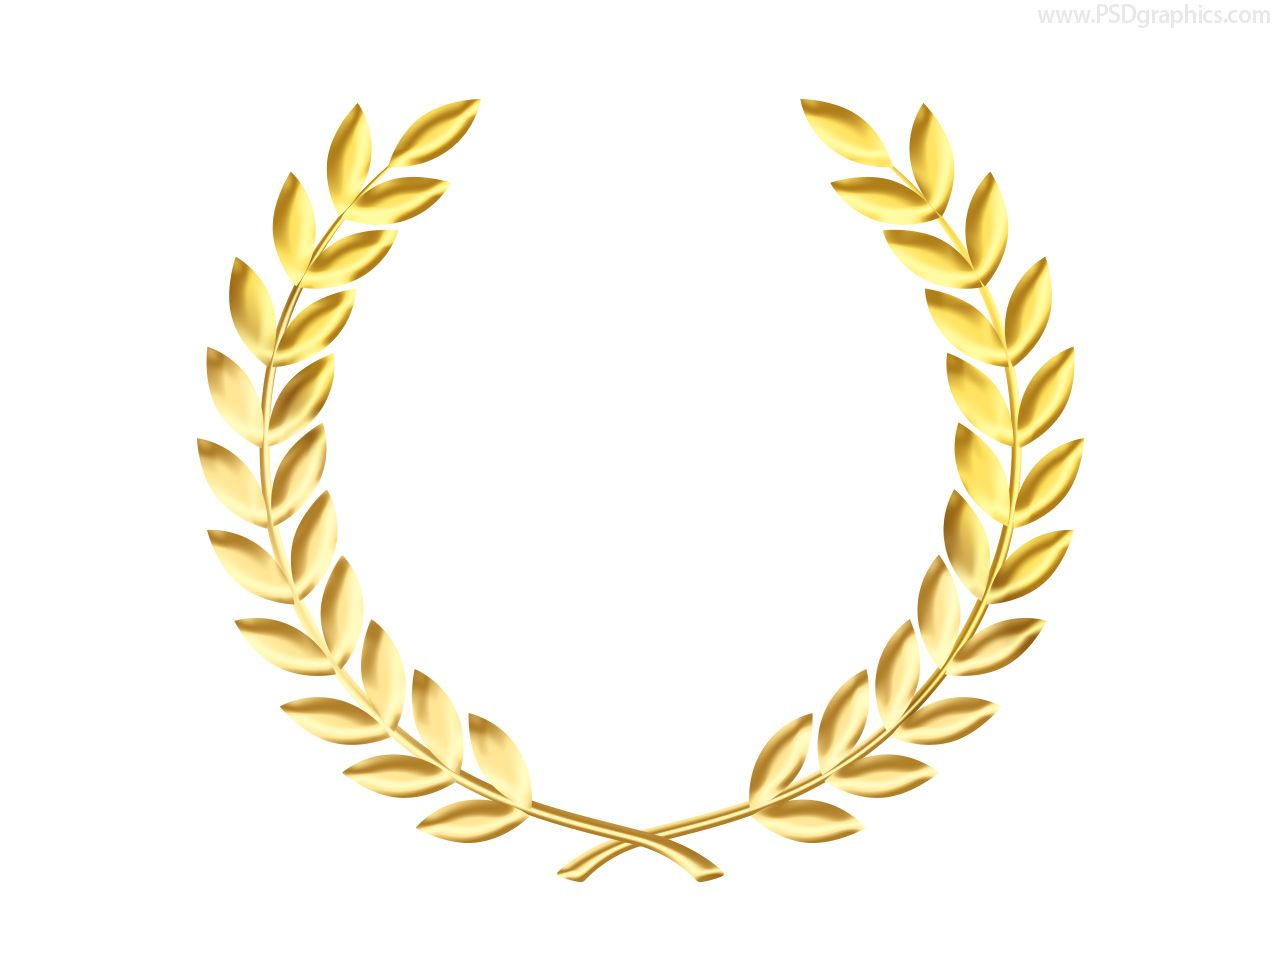 Door Wreaths Gold Laurel Wreath Medal Template Psd Psdgraphics